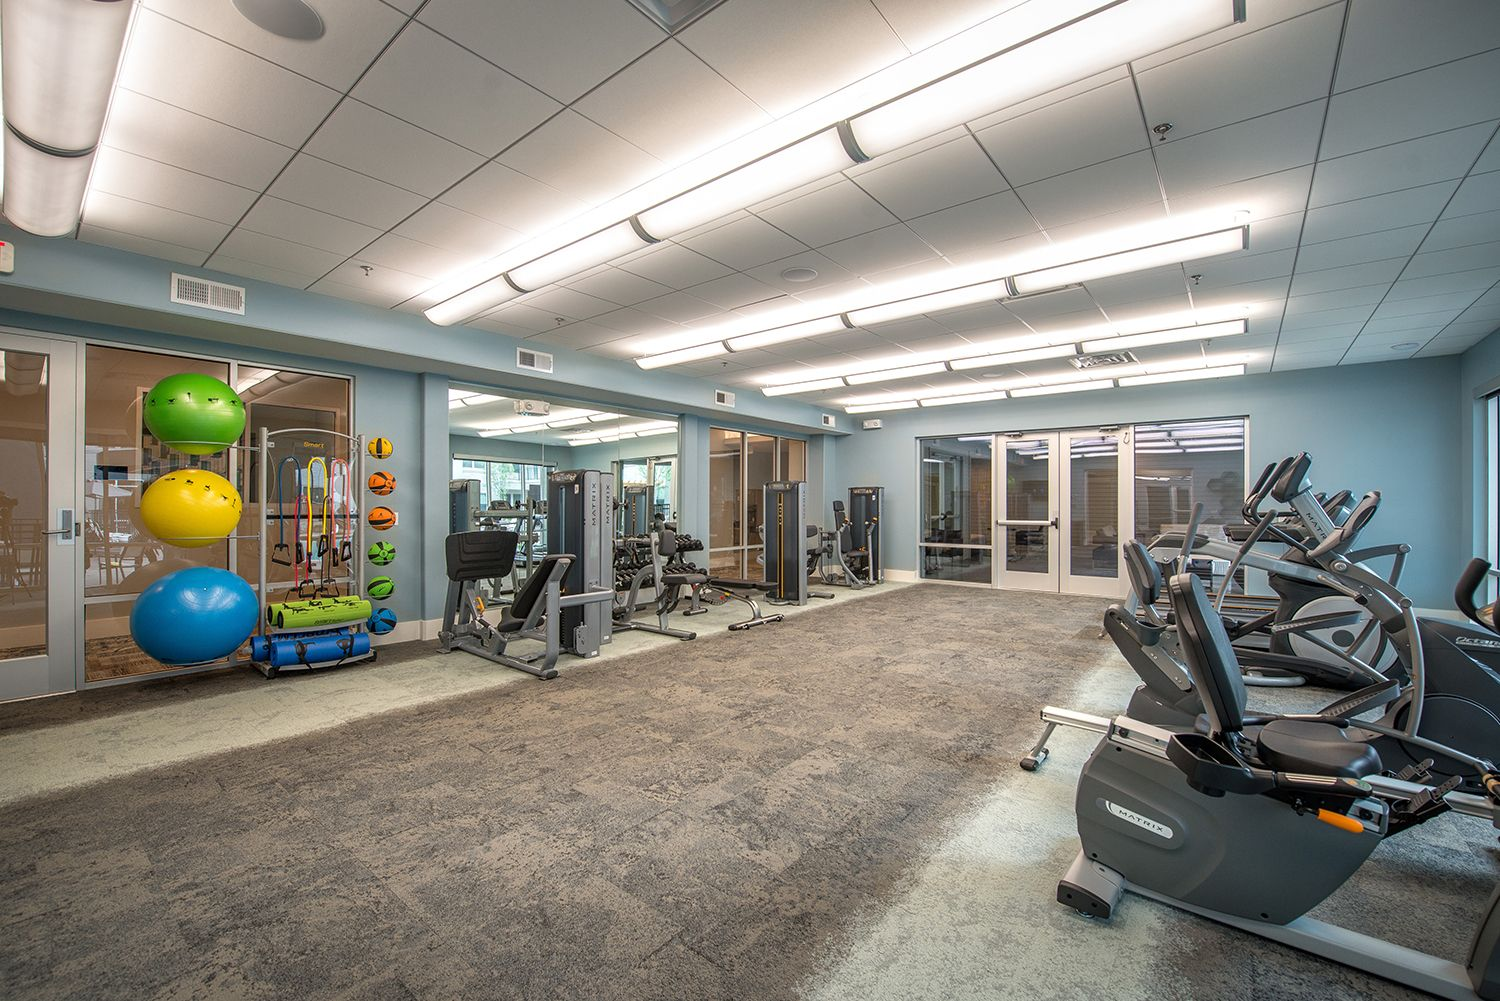 Gallery plano rental apartments fitness center